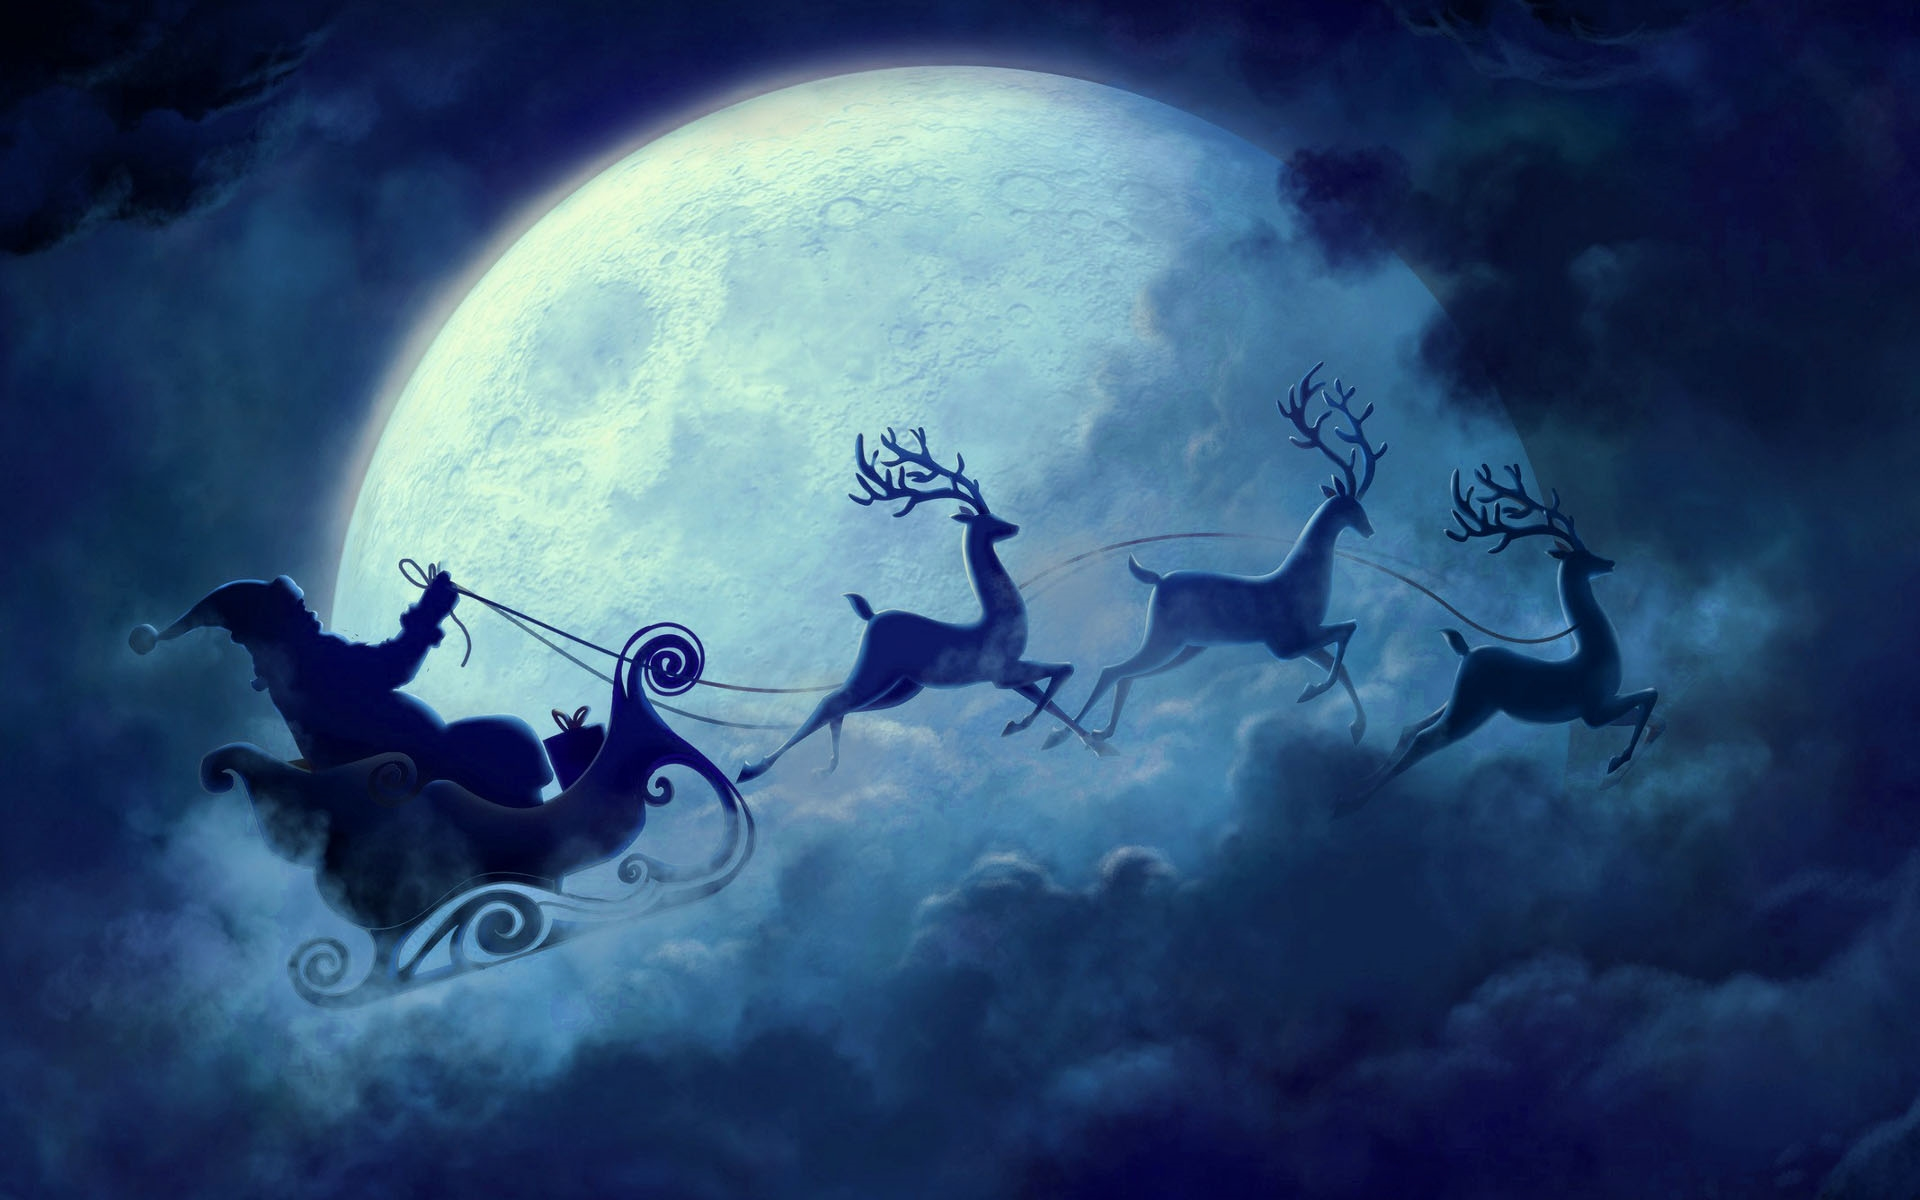 santa claus rein deers clouds wallpaper deskto